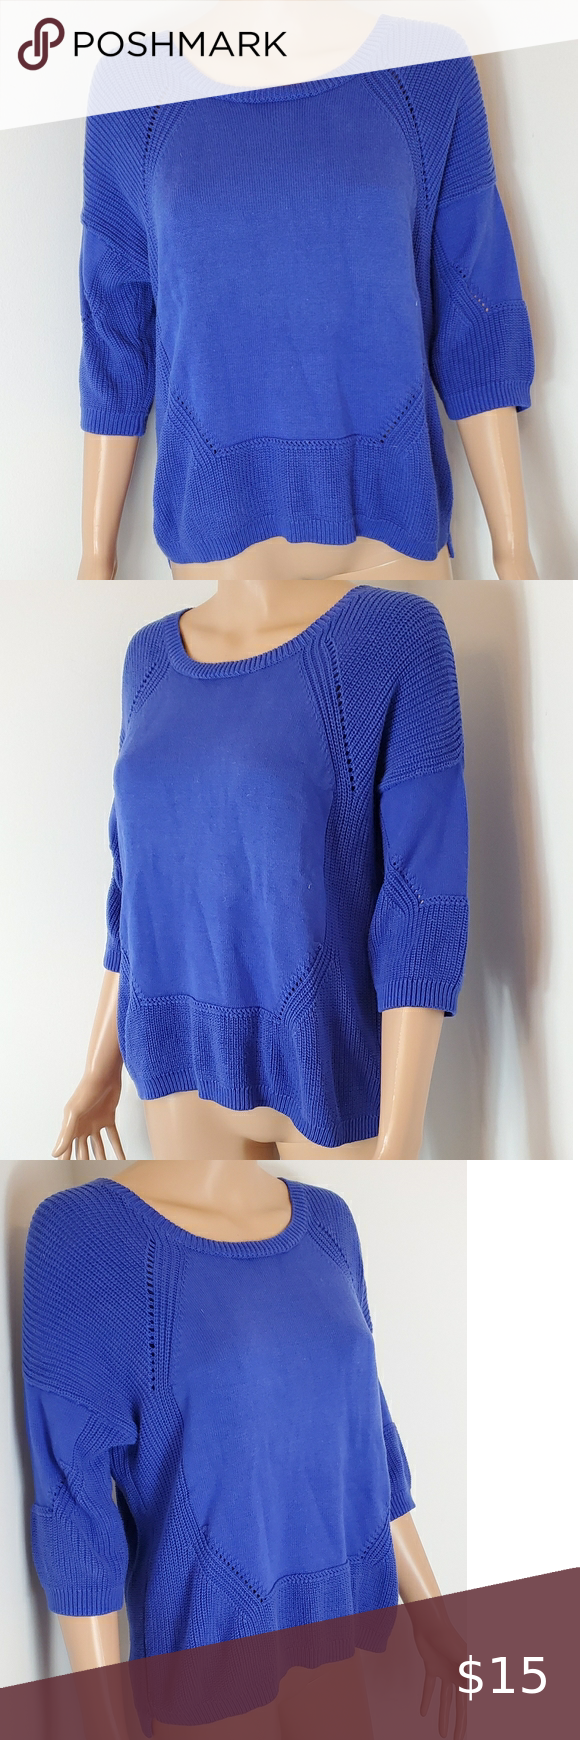 French Connection Sweater in 2020 | Royal blue color